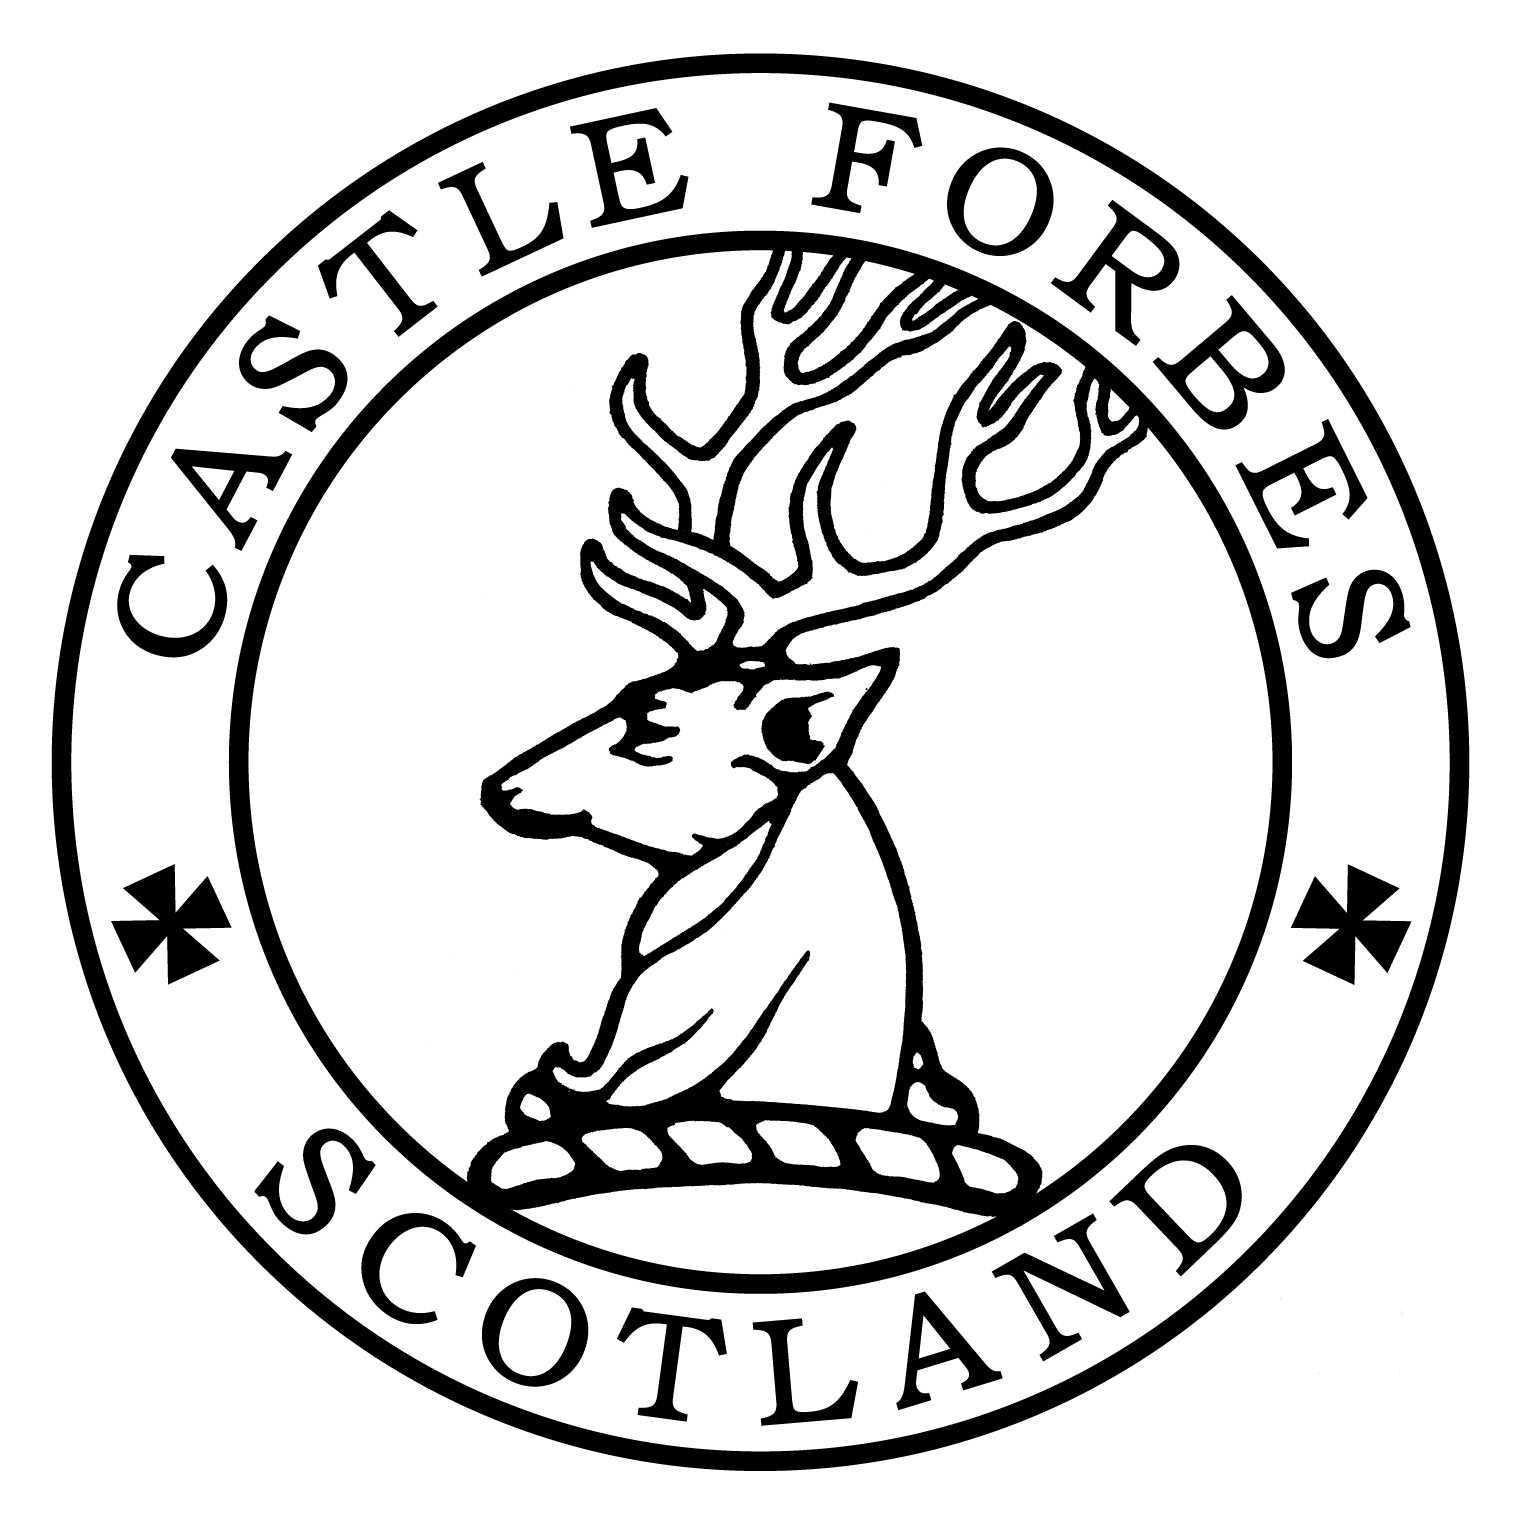 Castle Forbes Collection